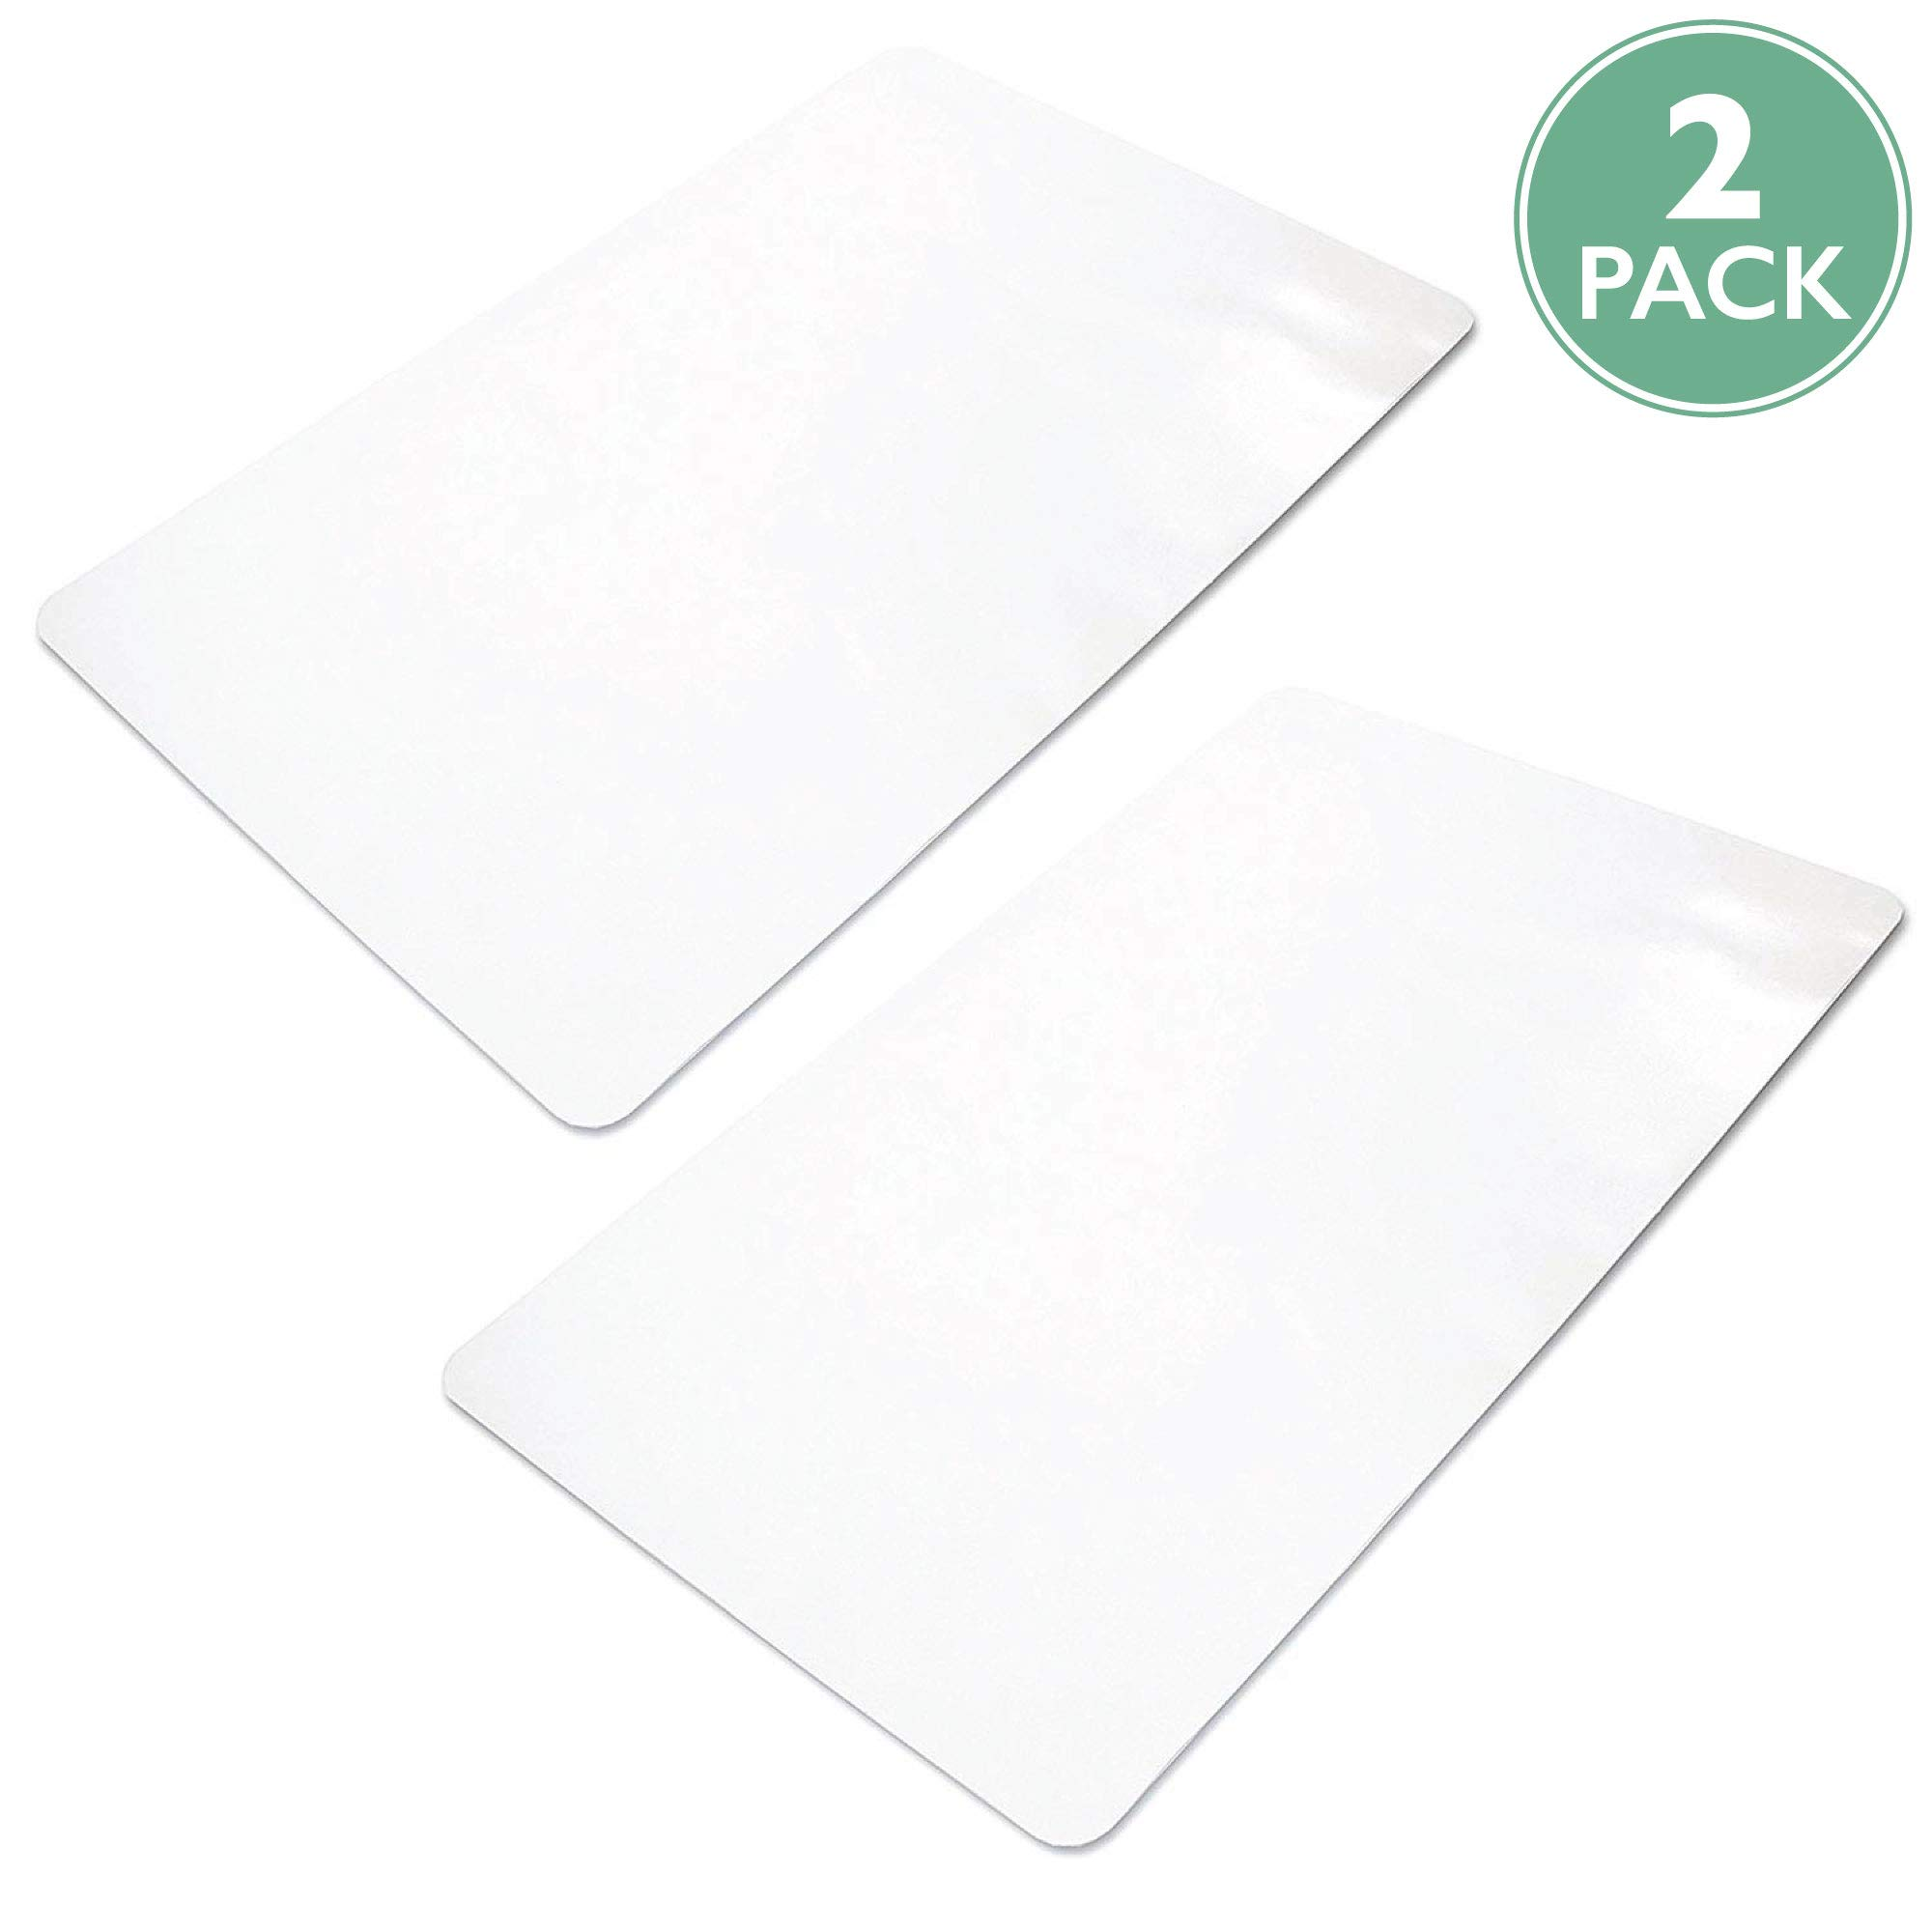 2 Pack of Office Chair Mats for Hardwood Floors 36 x 48 - Floor Mat for Desk Chairs by Ilyapa (Image #1)